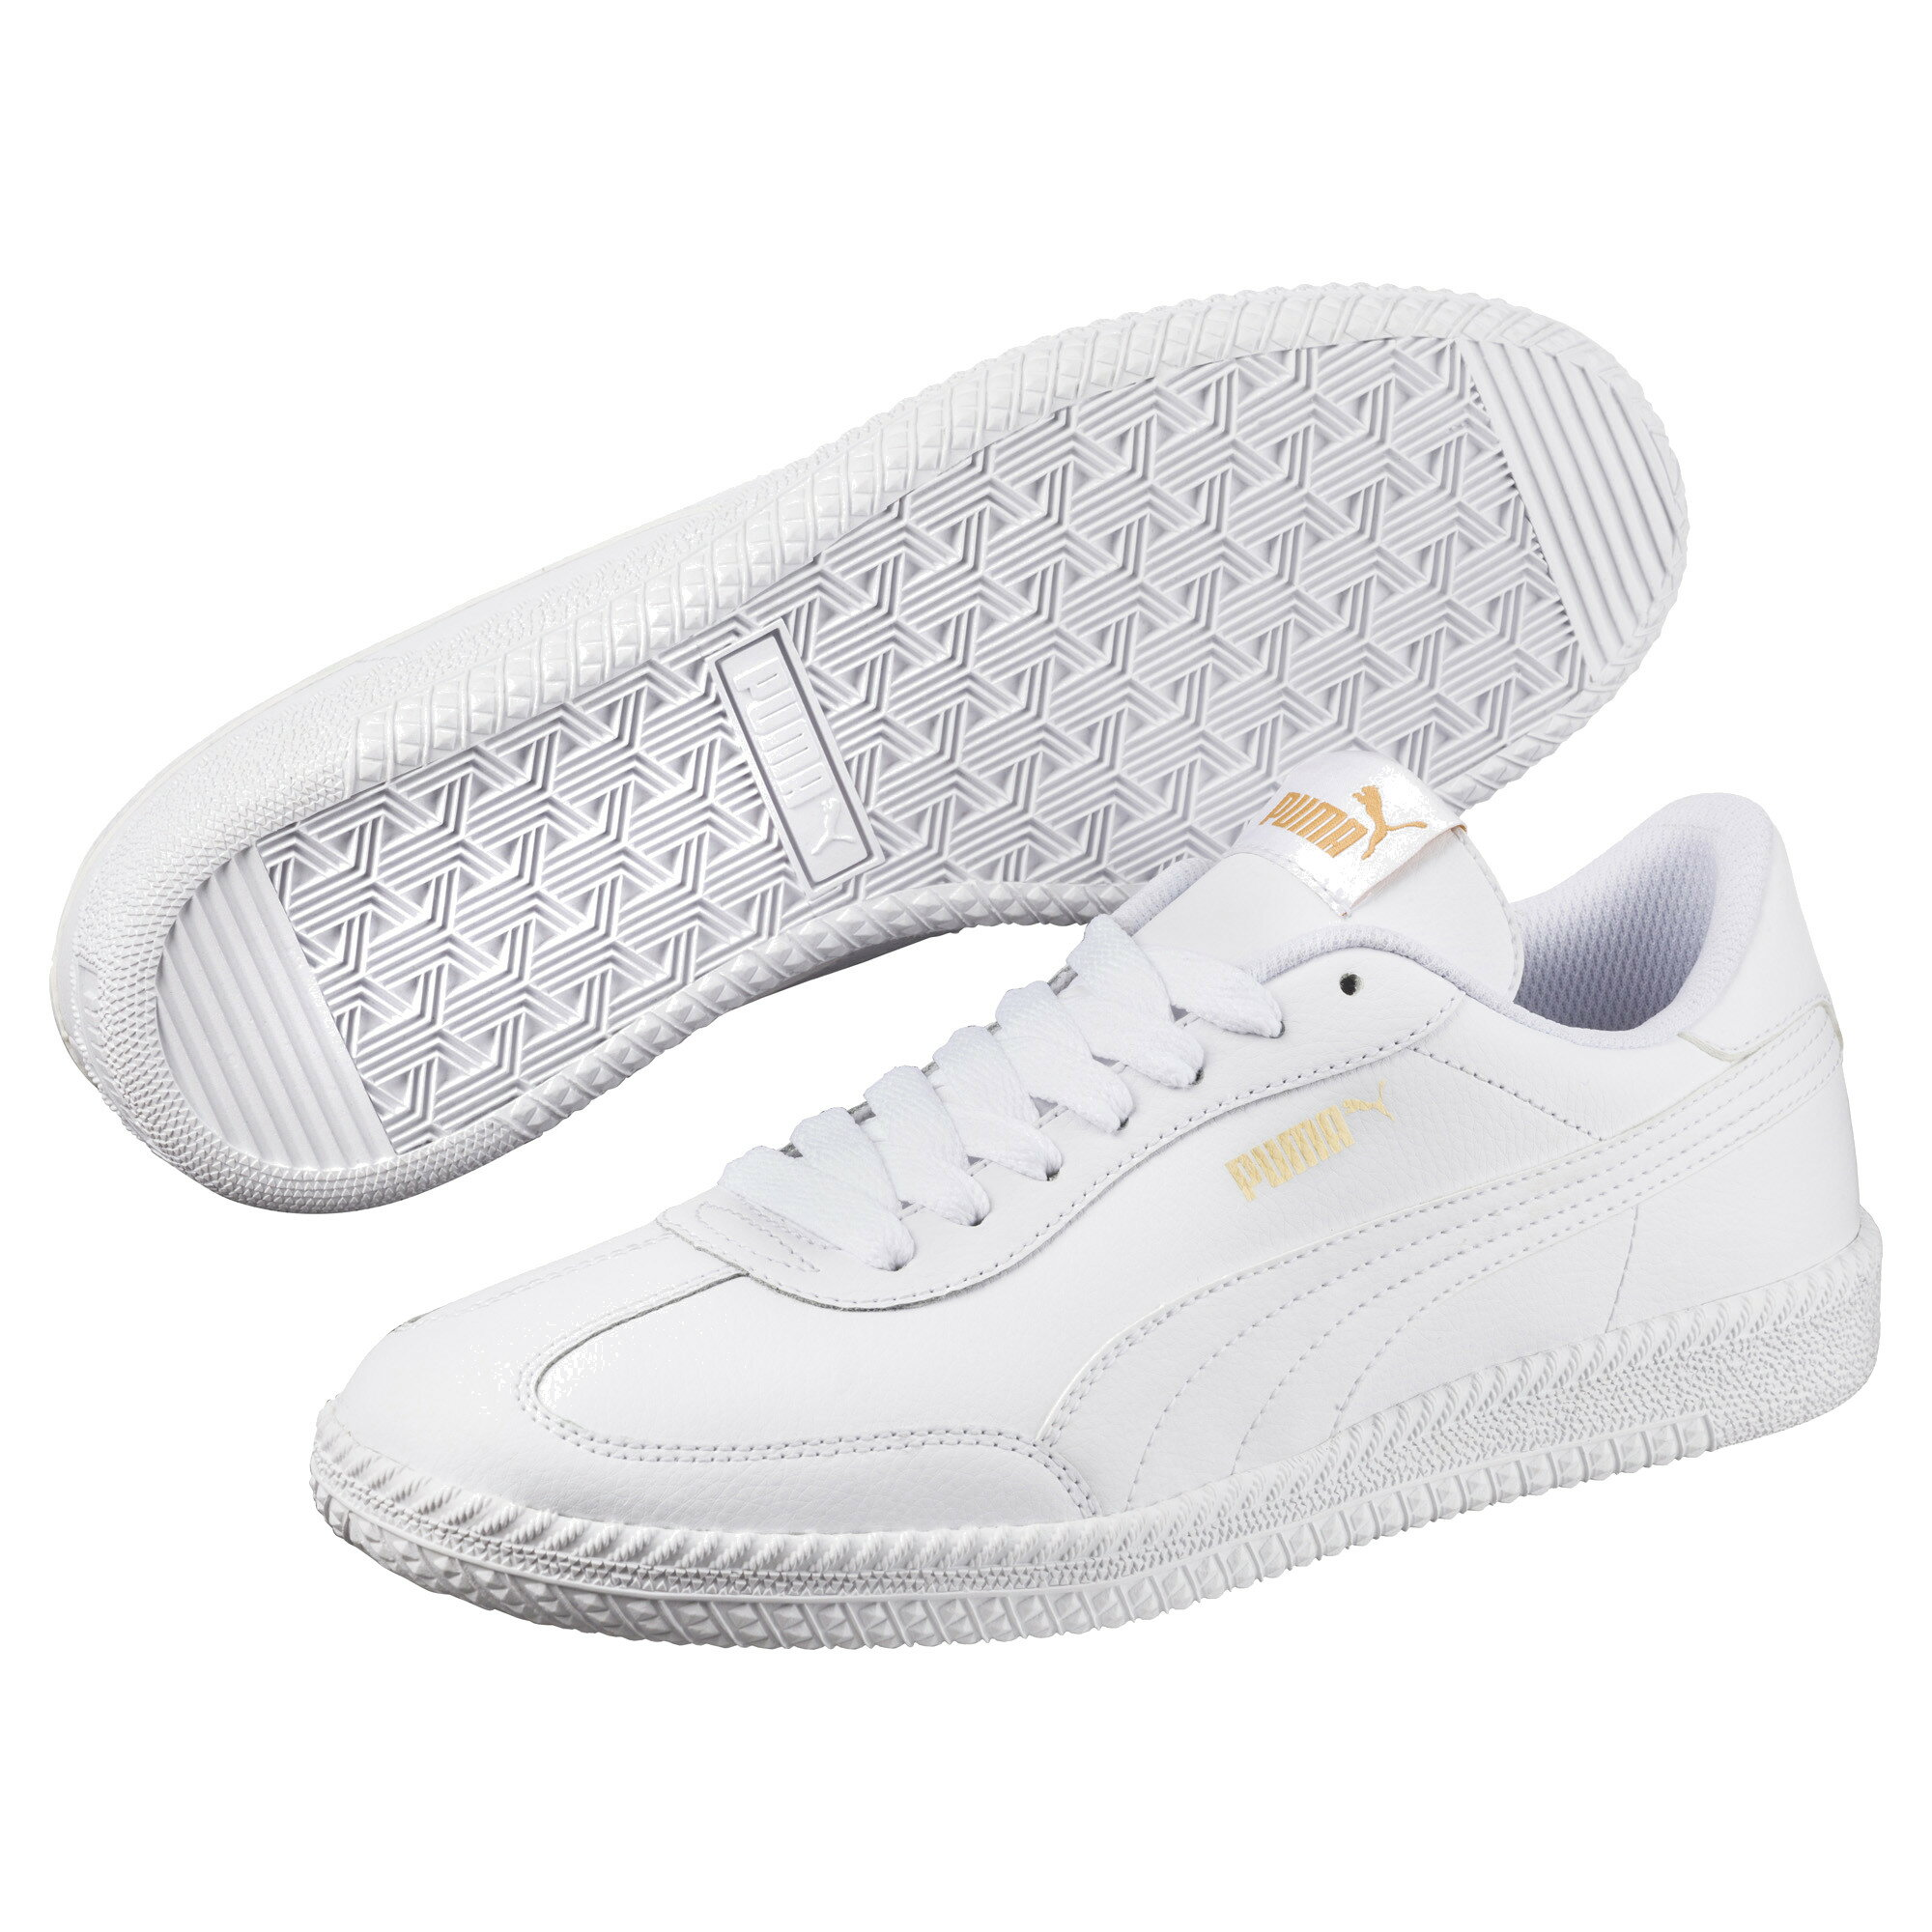 01ba13dd0742c4 Official Puma Store  PUMA Astro Cup Leather Trainers